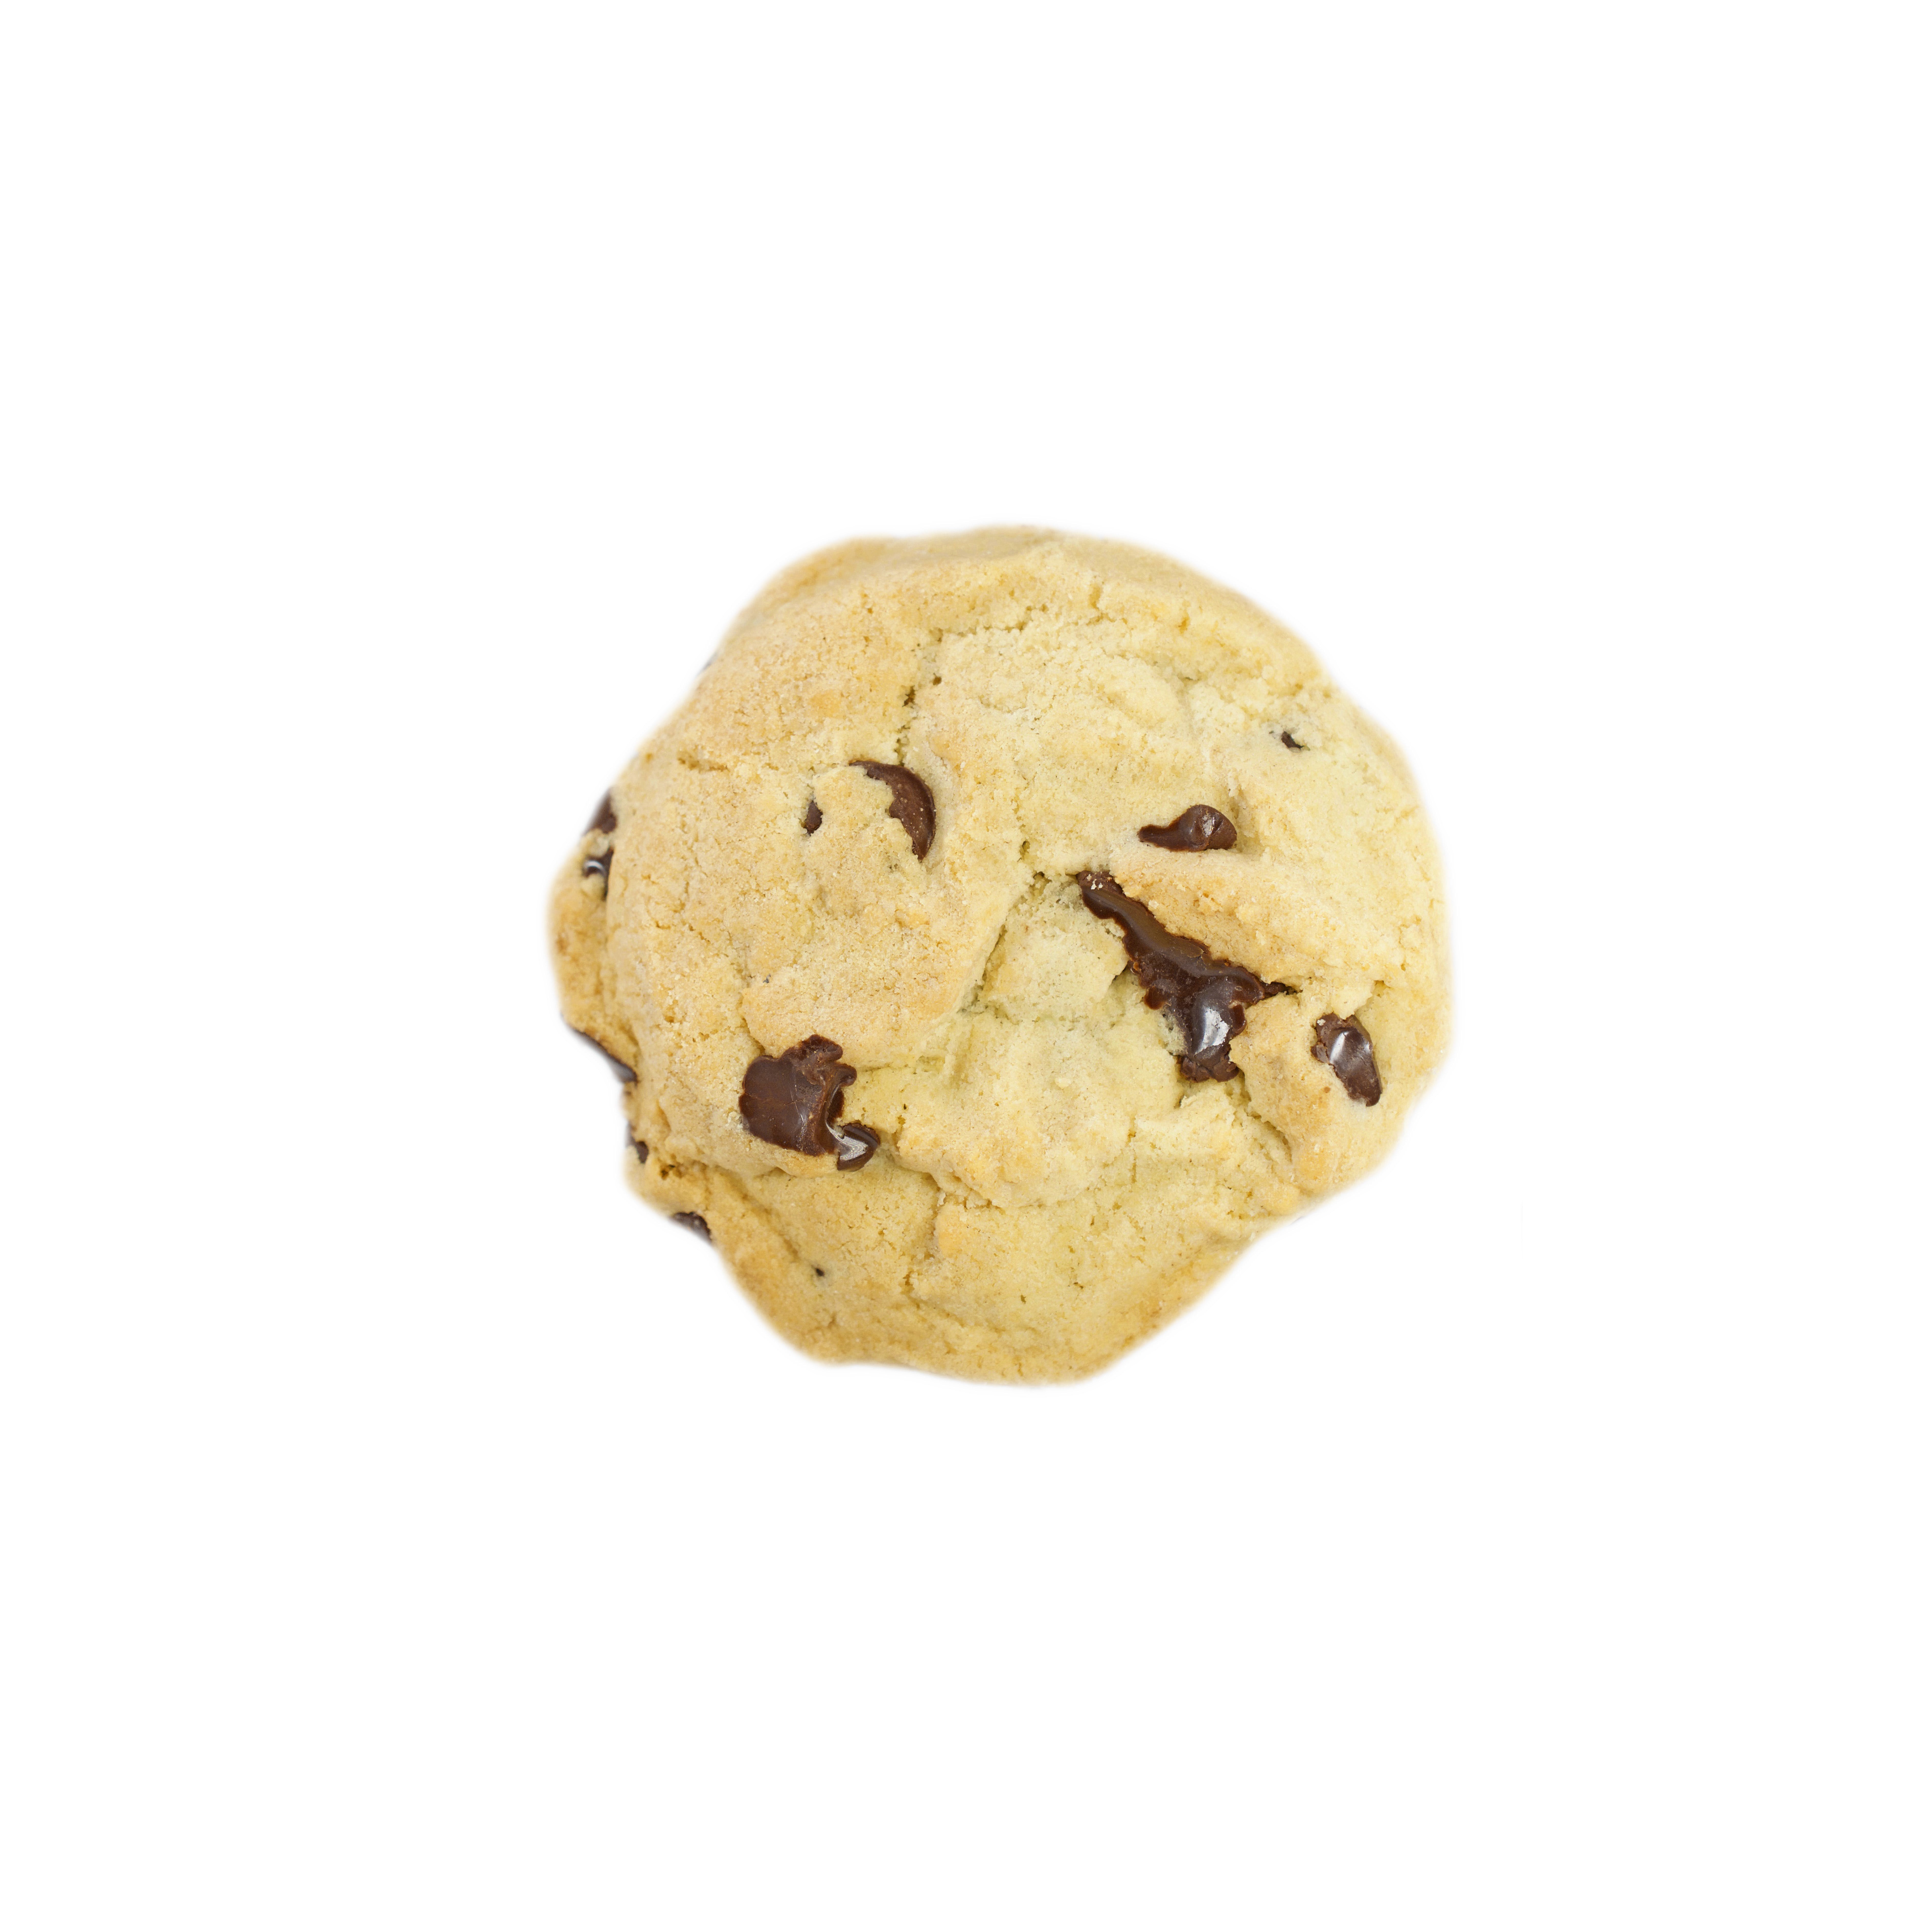 edible-garden-remedies-chocolate-chip-cookie-3-pack